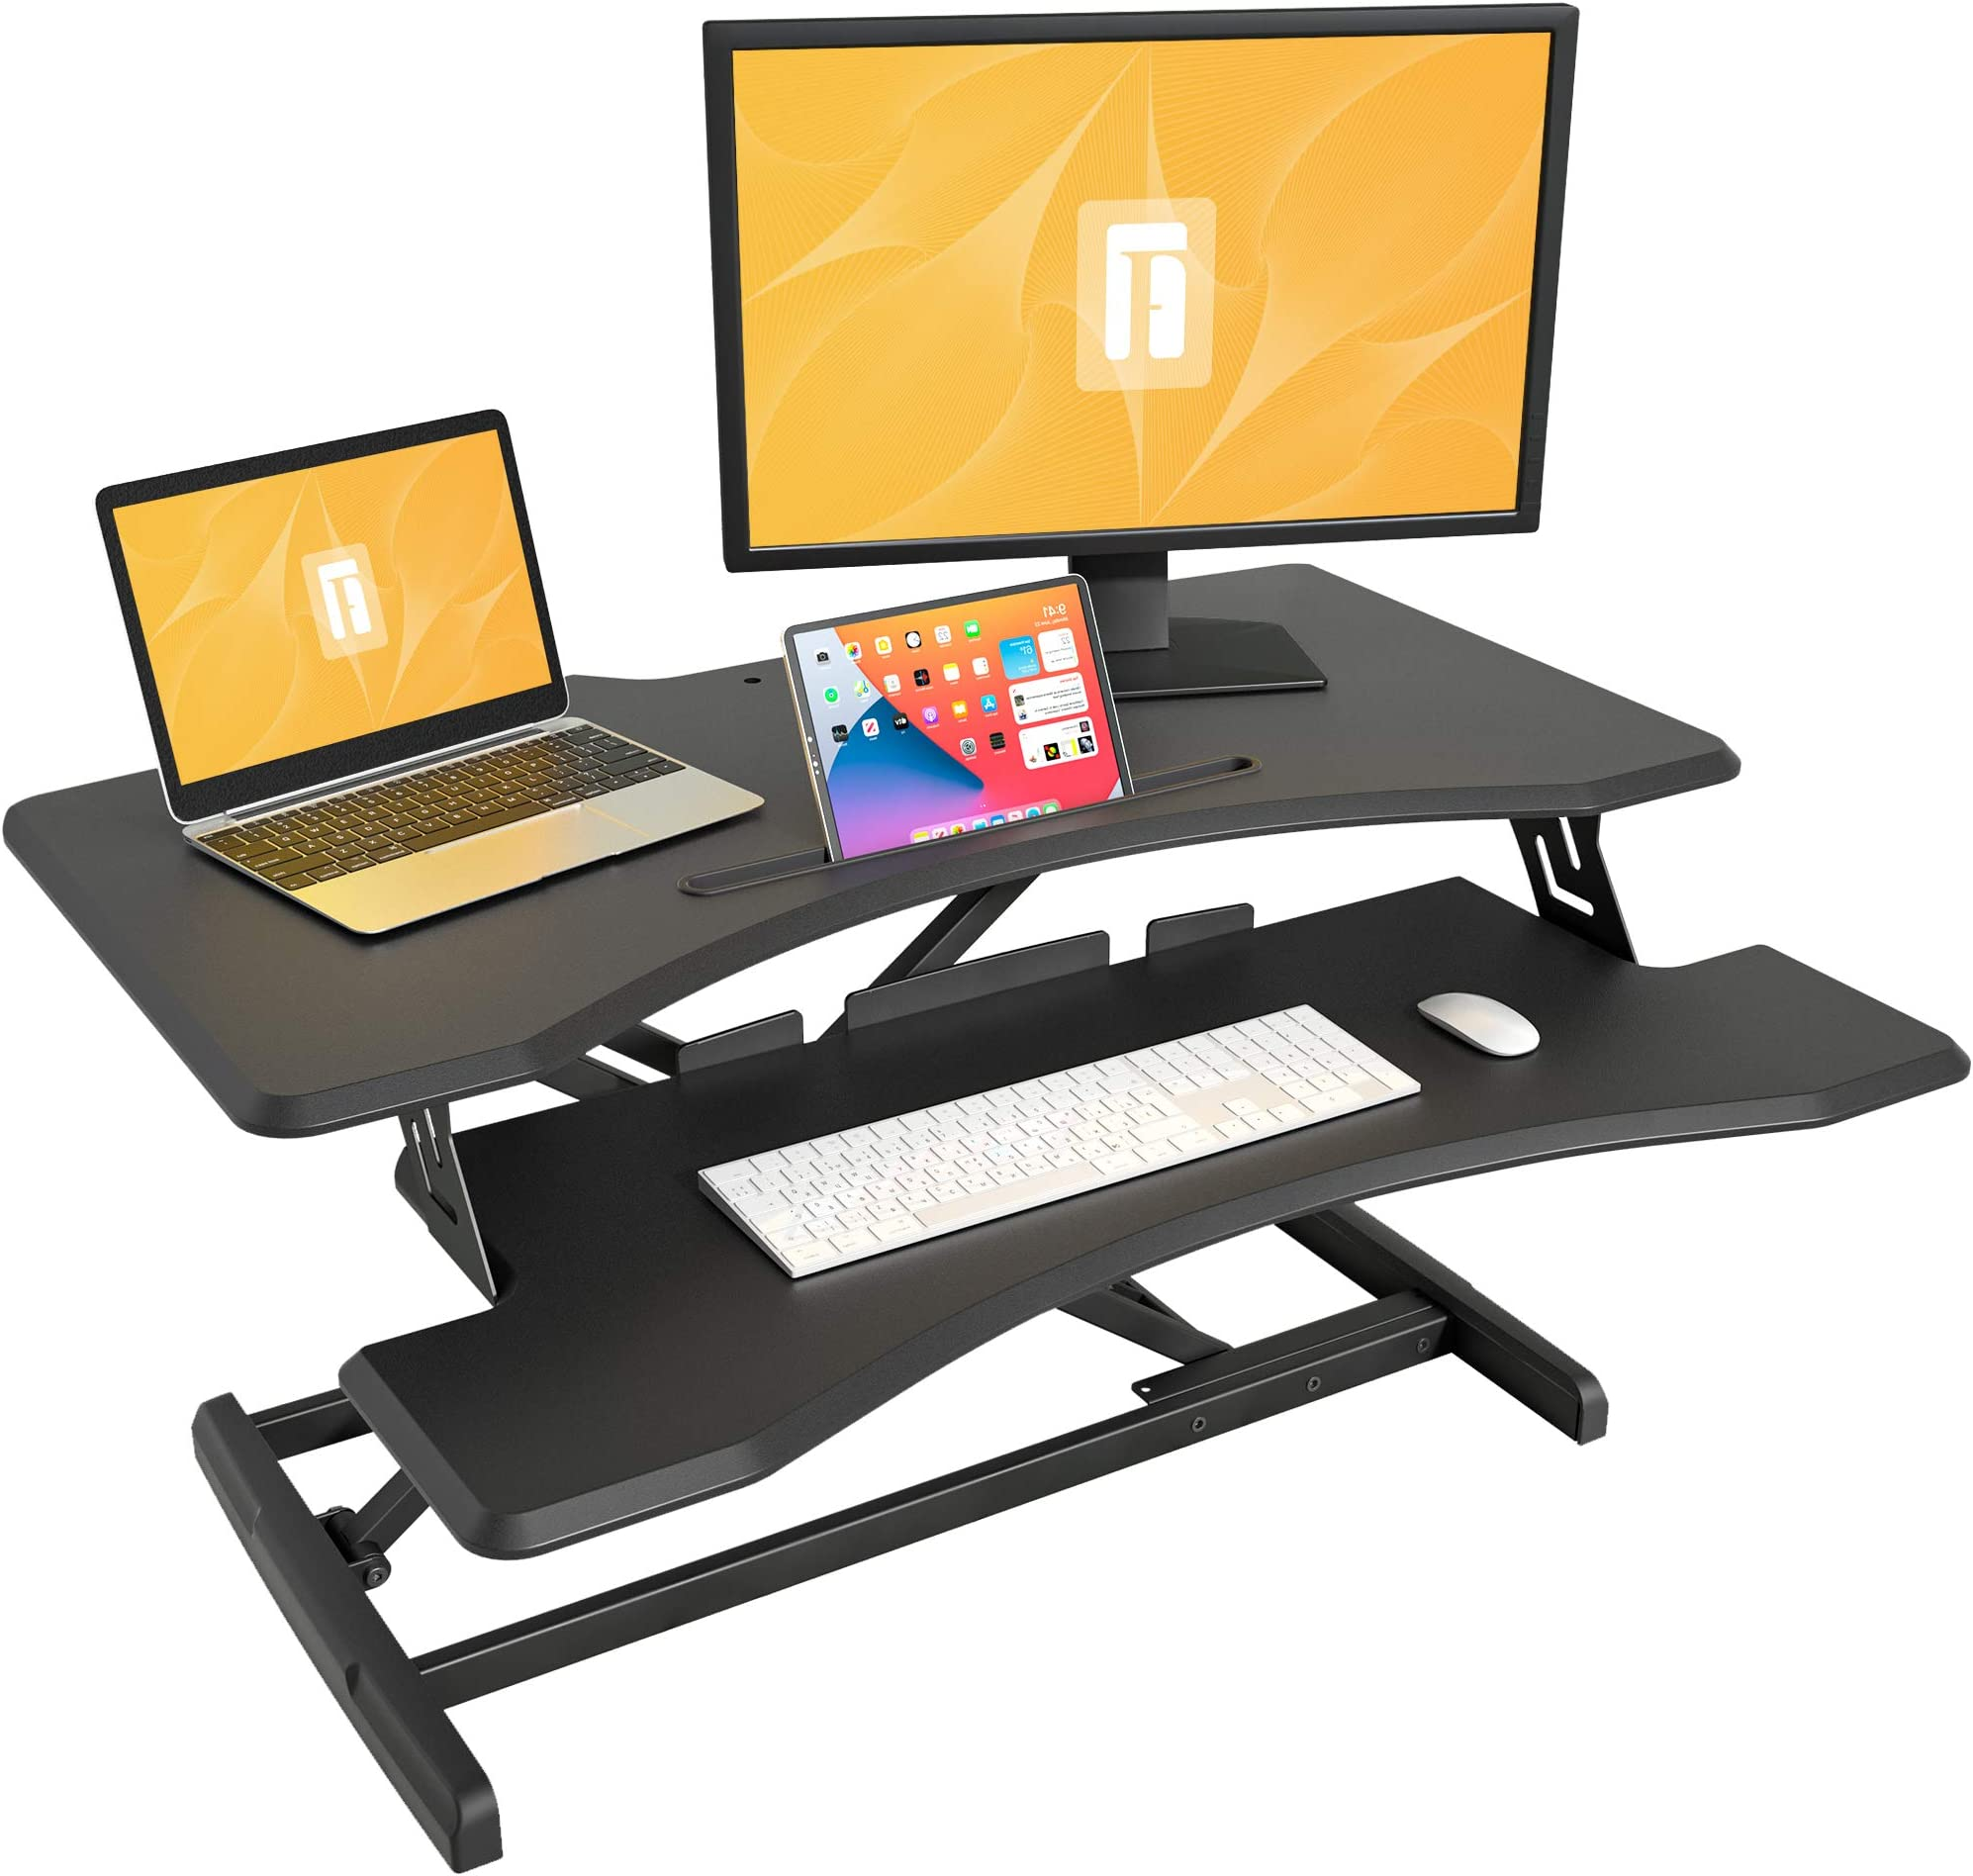 Standing Desk with Height Adjustable – FEZIBO 37 inches Standing Desk Converter Black Stand Up Riser Tabletop Workstation fits Dual Monitor